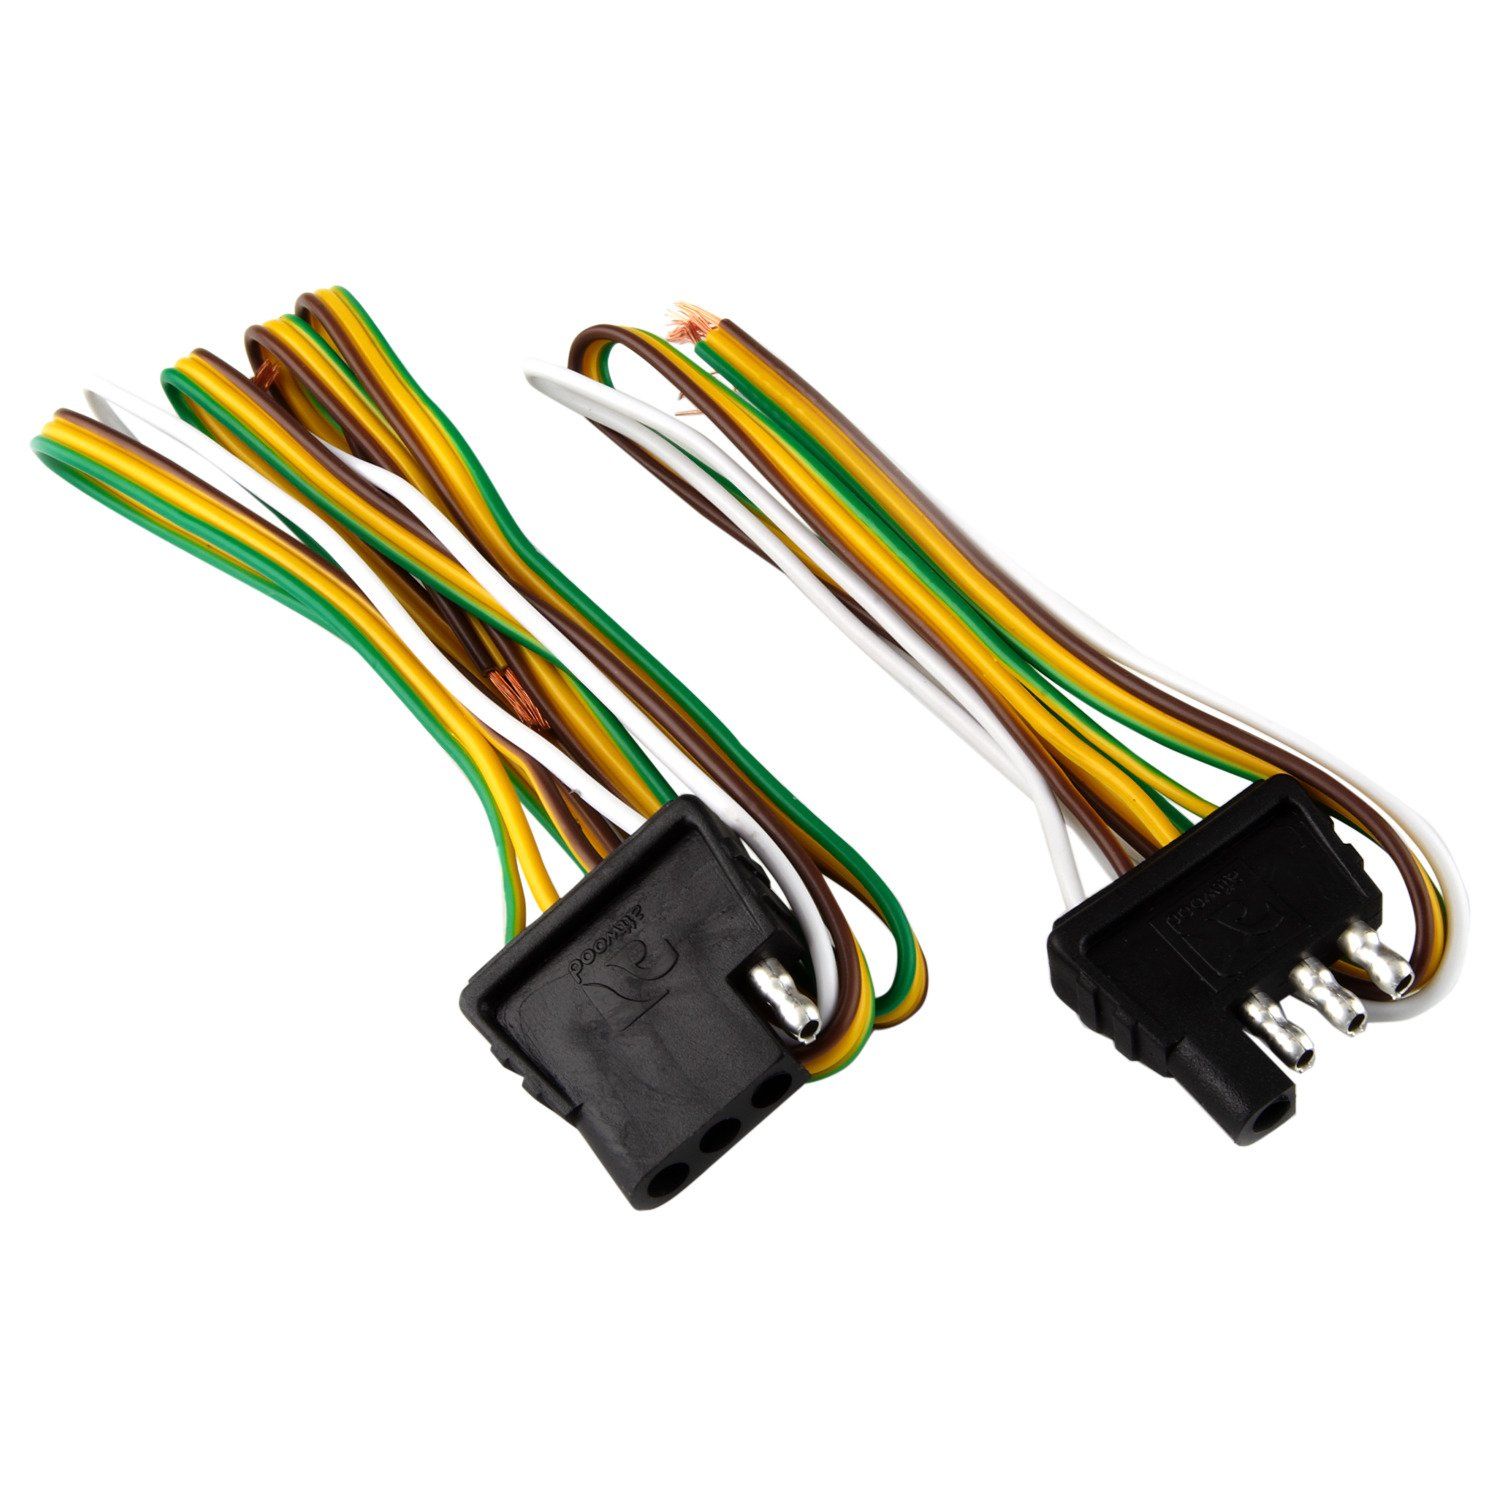 trailer lighting & wiring boat trailer lights, taillights academy winch wiring attwood® 4 way flat wiring harness kit for vehicles and trailers